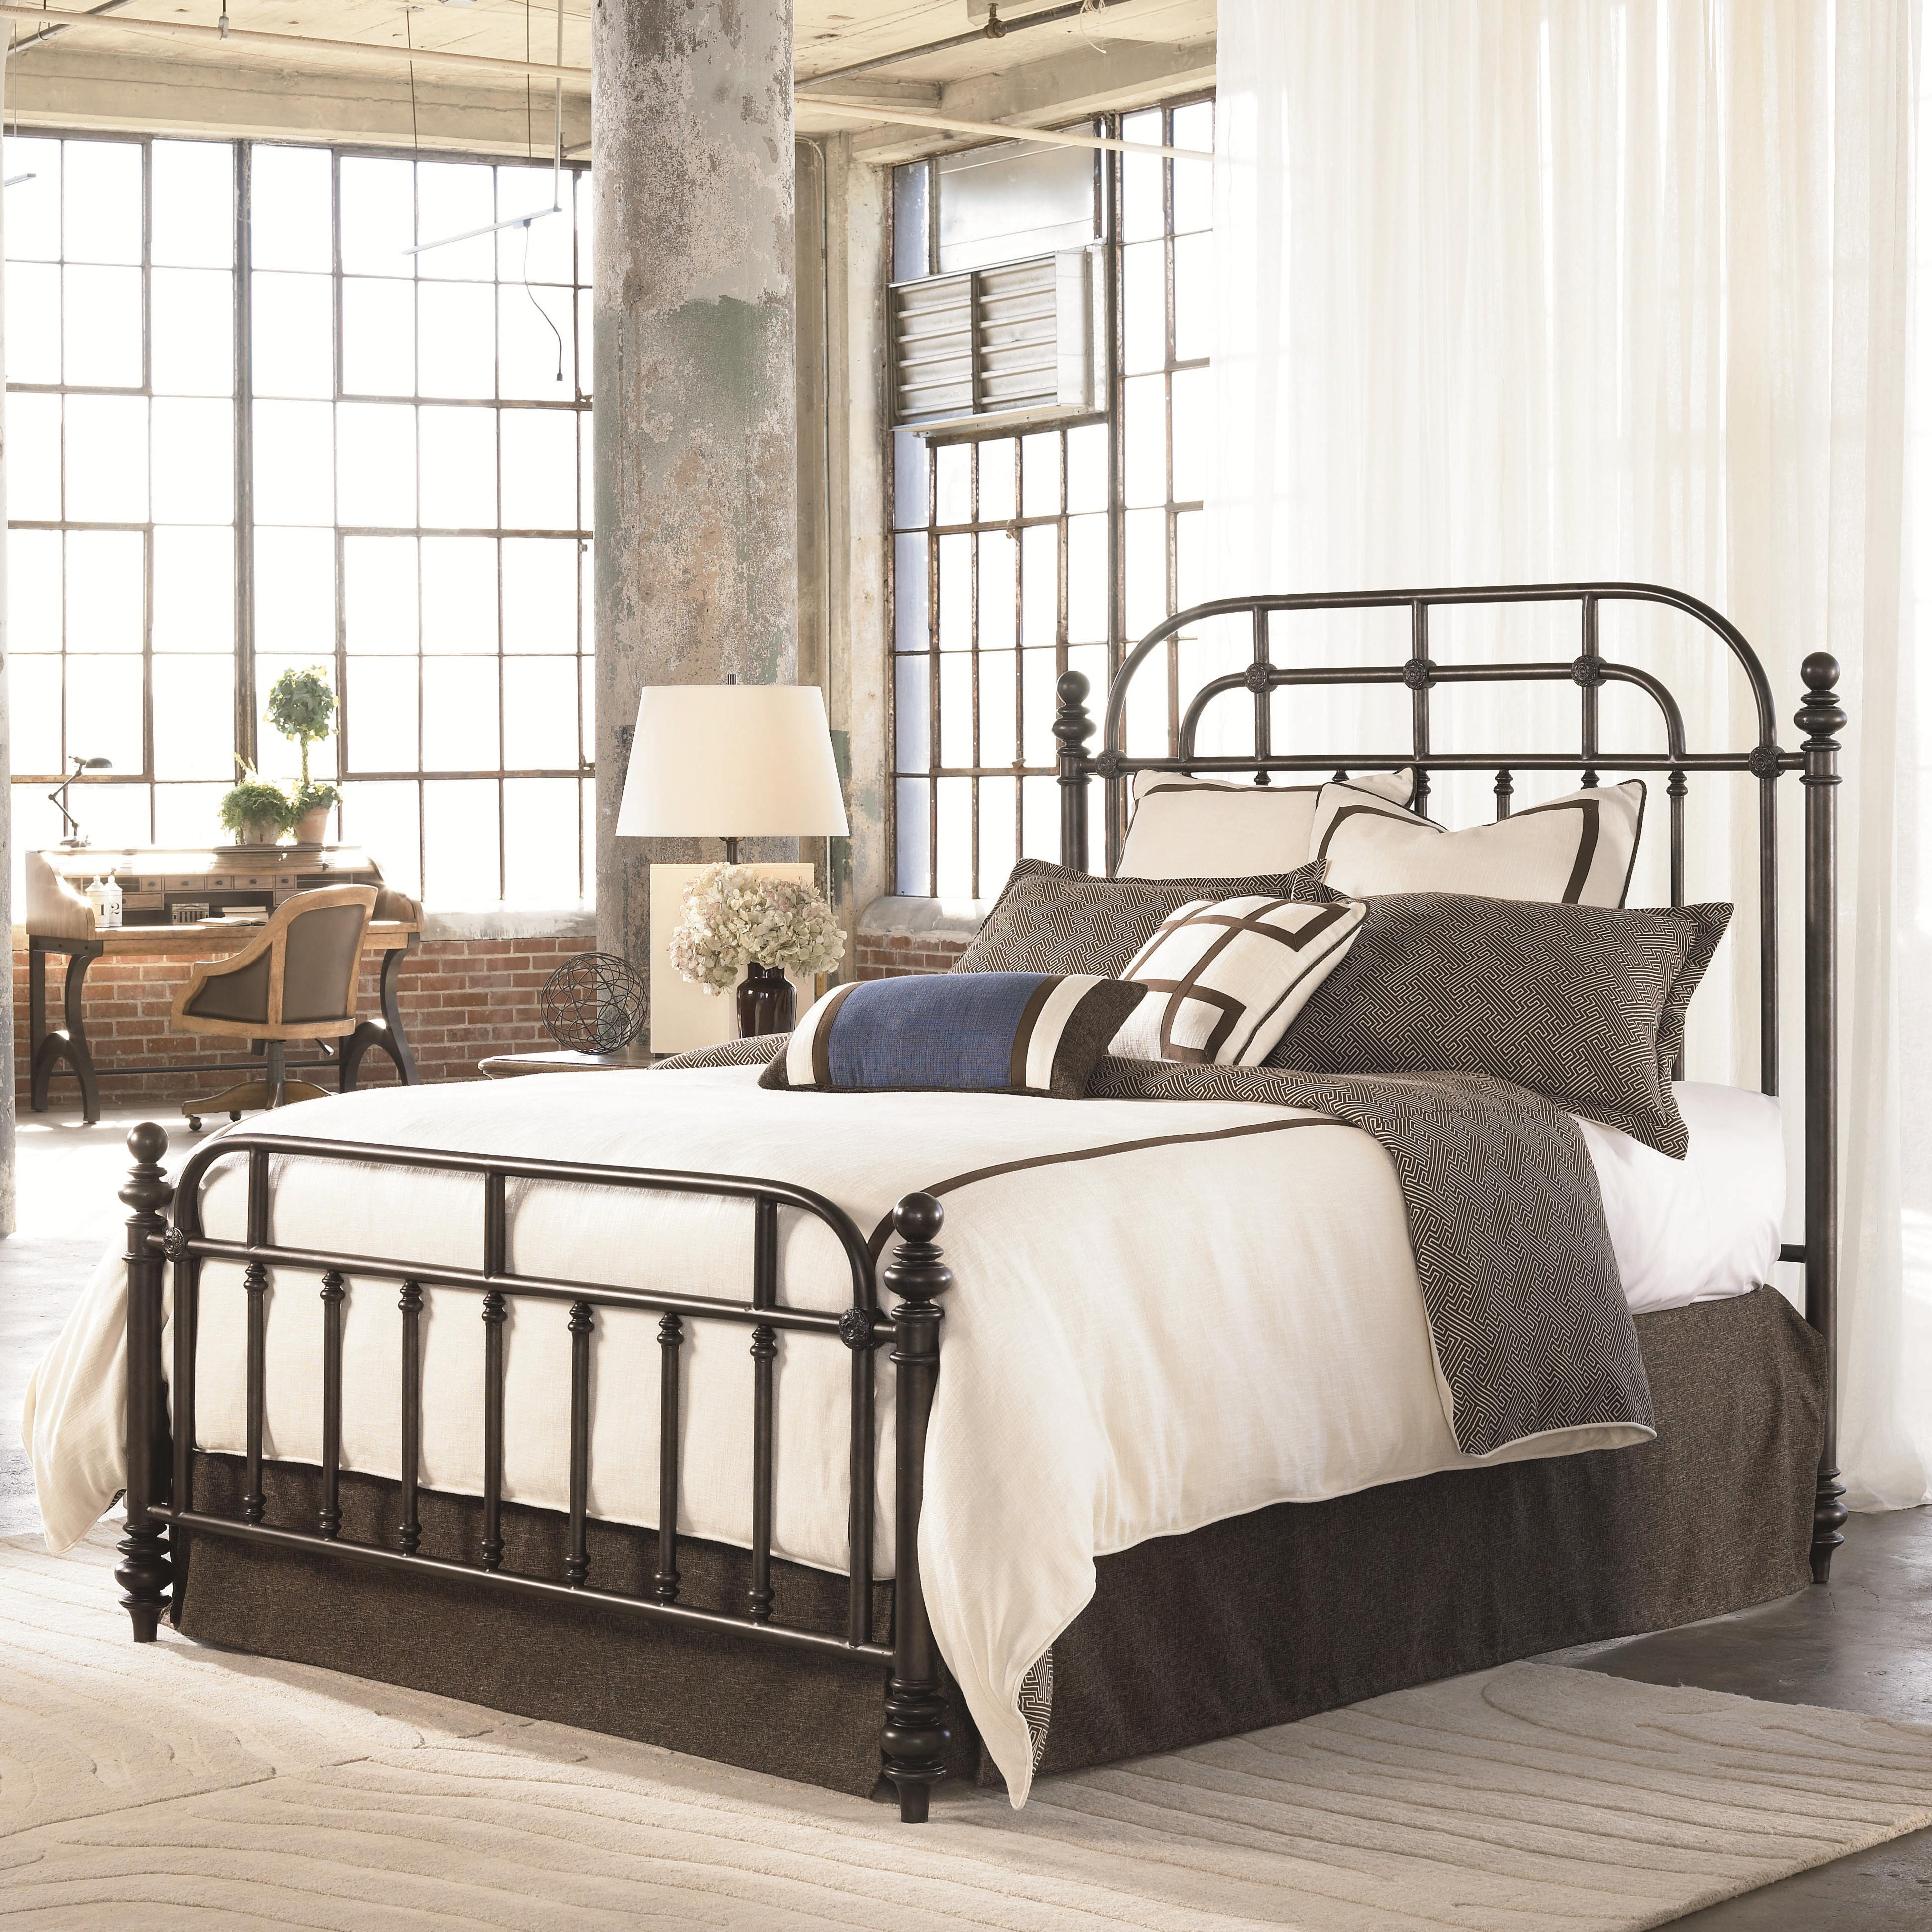 Thomasville® Reinventions Queen Pullman Metal Headboard And Foodboard Bed |  Sprintz Furniture | Panel Beds Nashville, Franklin, And Greater Tennessee